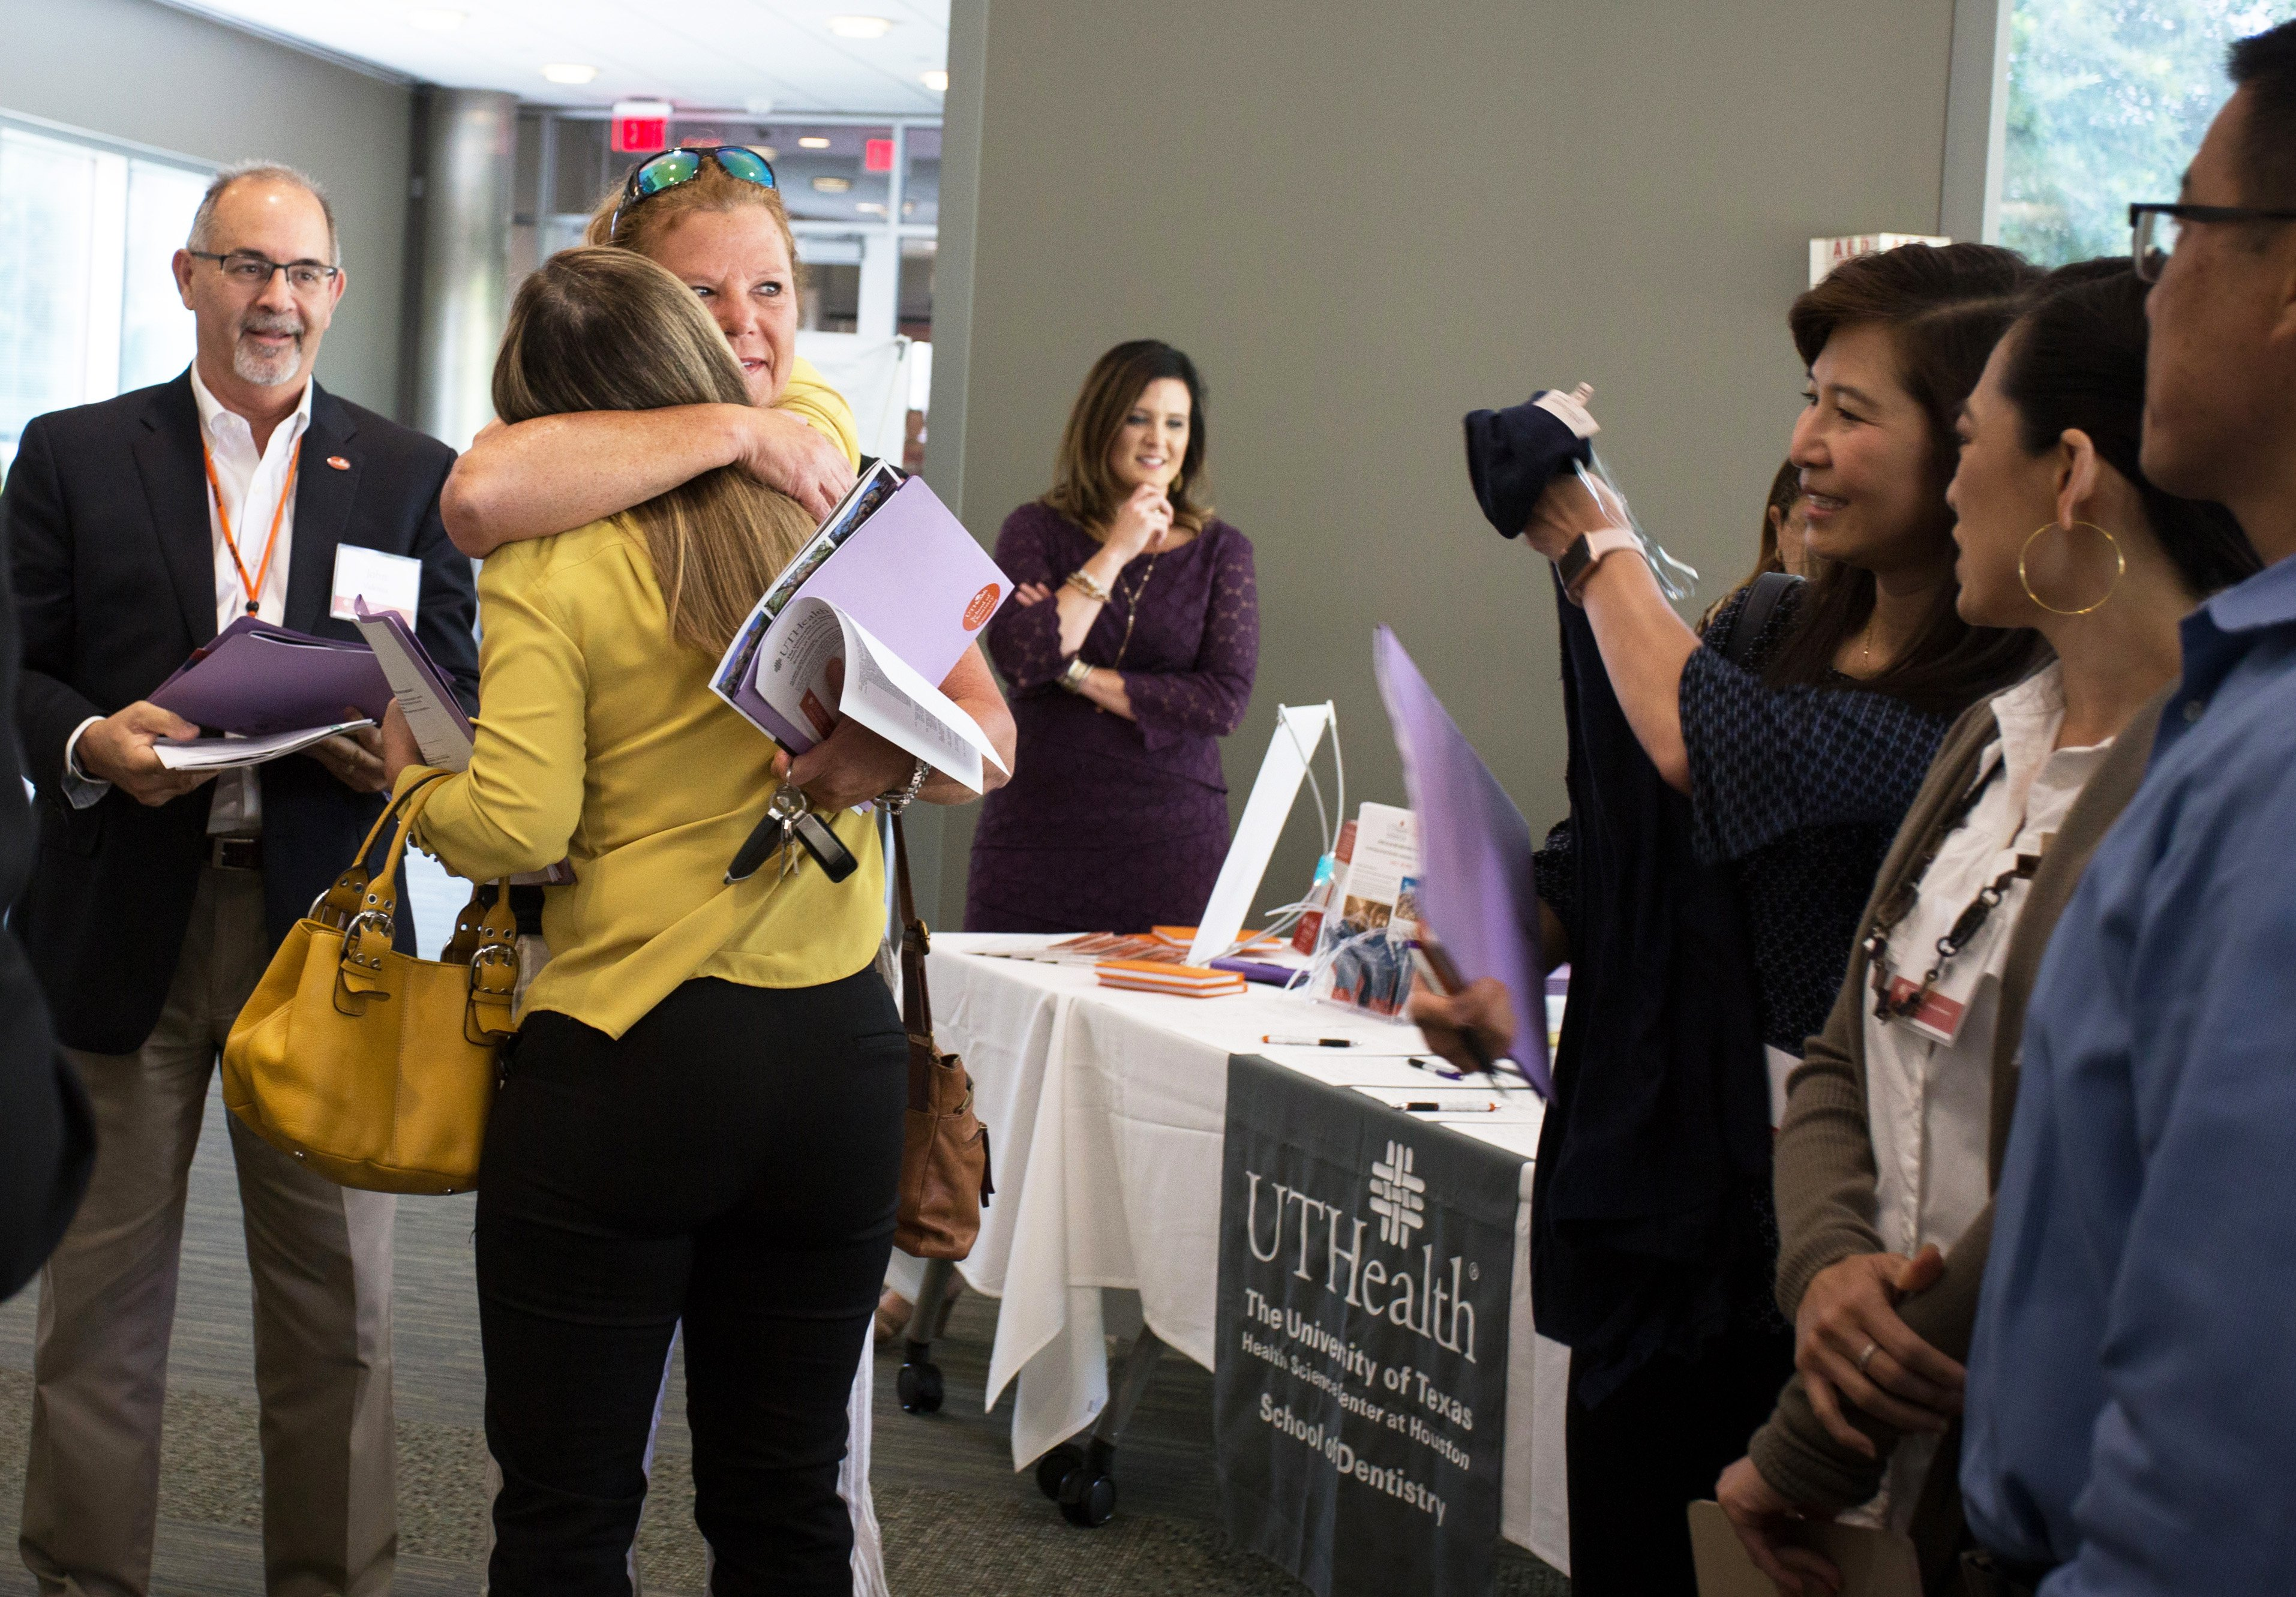 Nina Leifeste, DDS '88, GPR '89 hugs a colleague at the General Practice Residency program's 30th anniversary reunion at the Cooley Center. Dean John Valenza, DDS '81 (left) was the program's founding director in 1988.